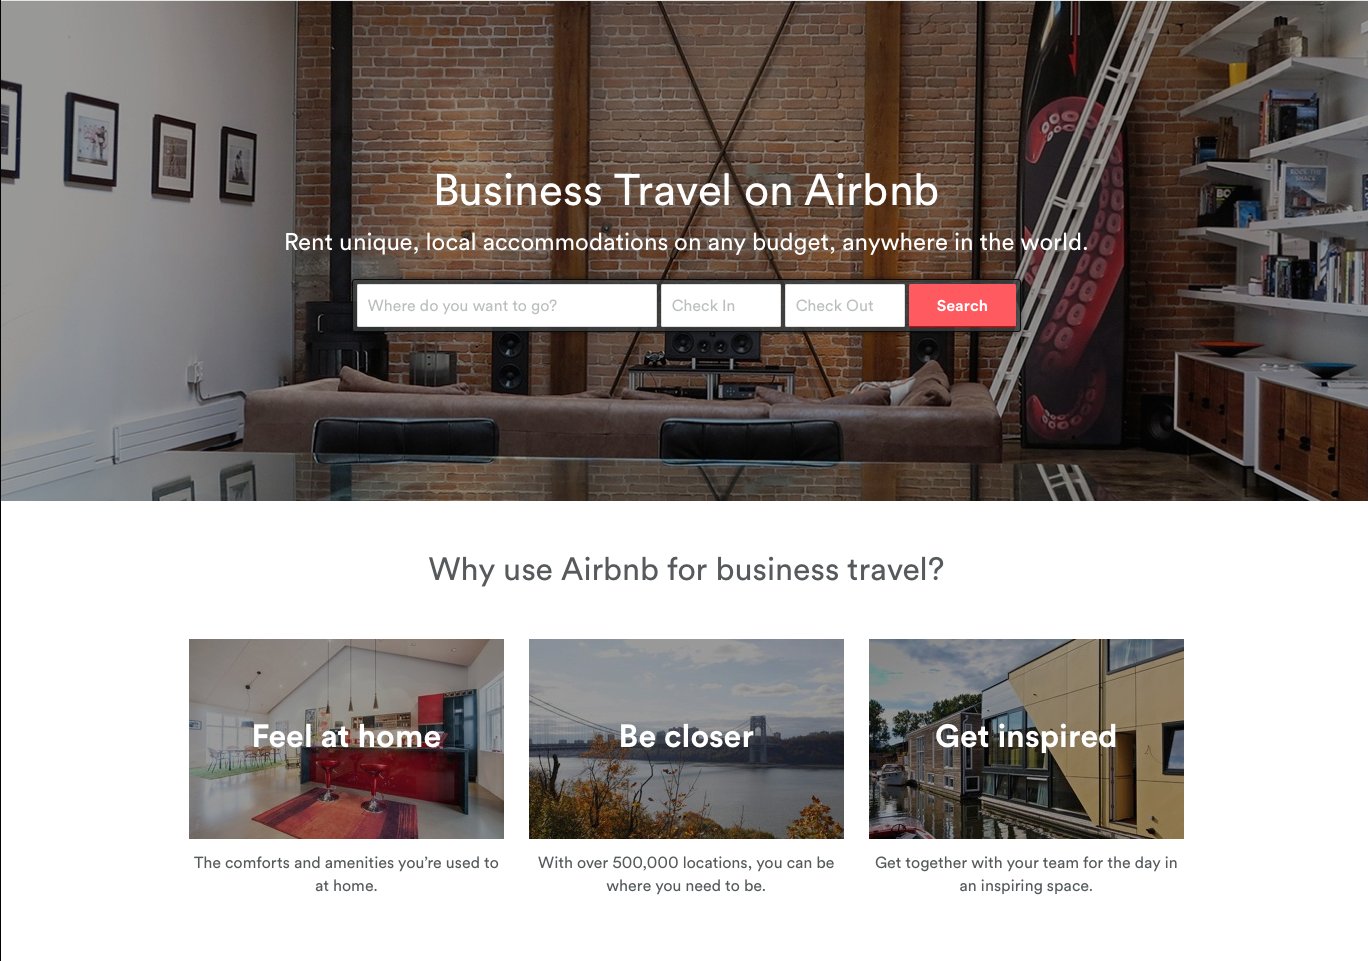 business-travel-on-airbnb-screenshot-short.png